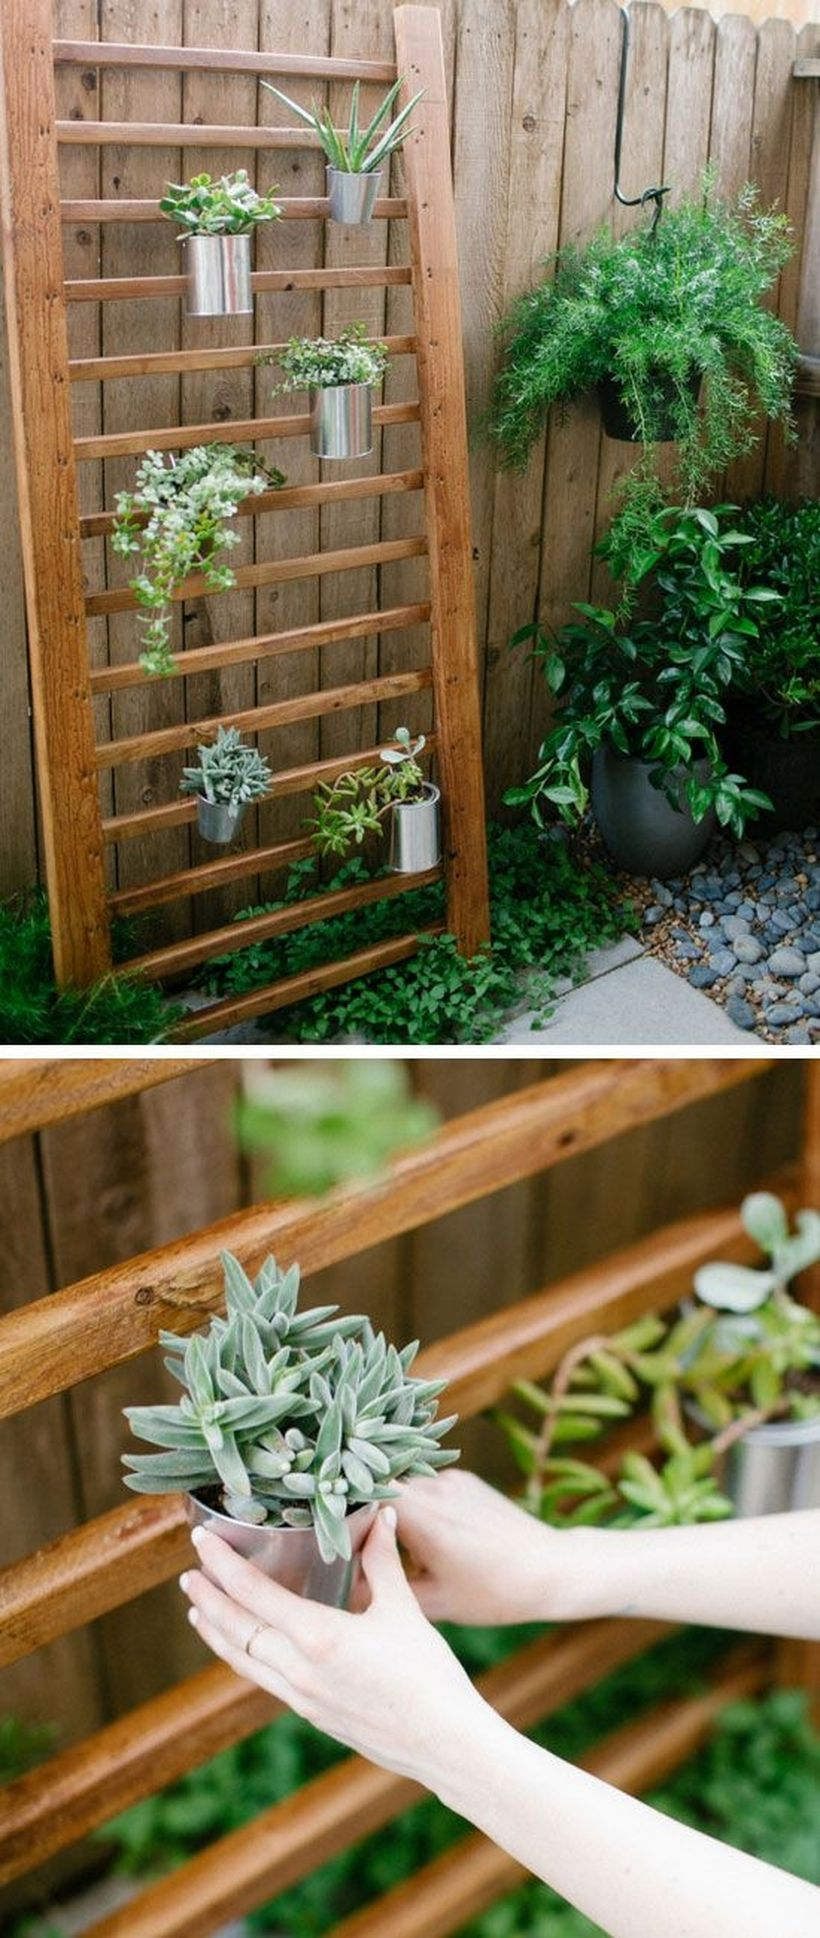 Best backyard ideas on a budget 15 - Hoommy.com on Backyard Landscaping Ideas On A Budget  id=90590